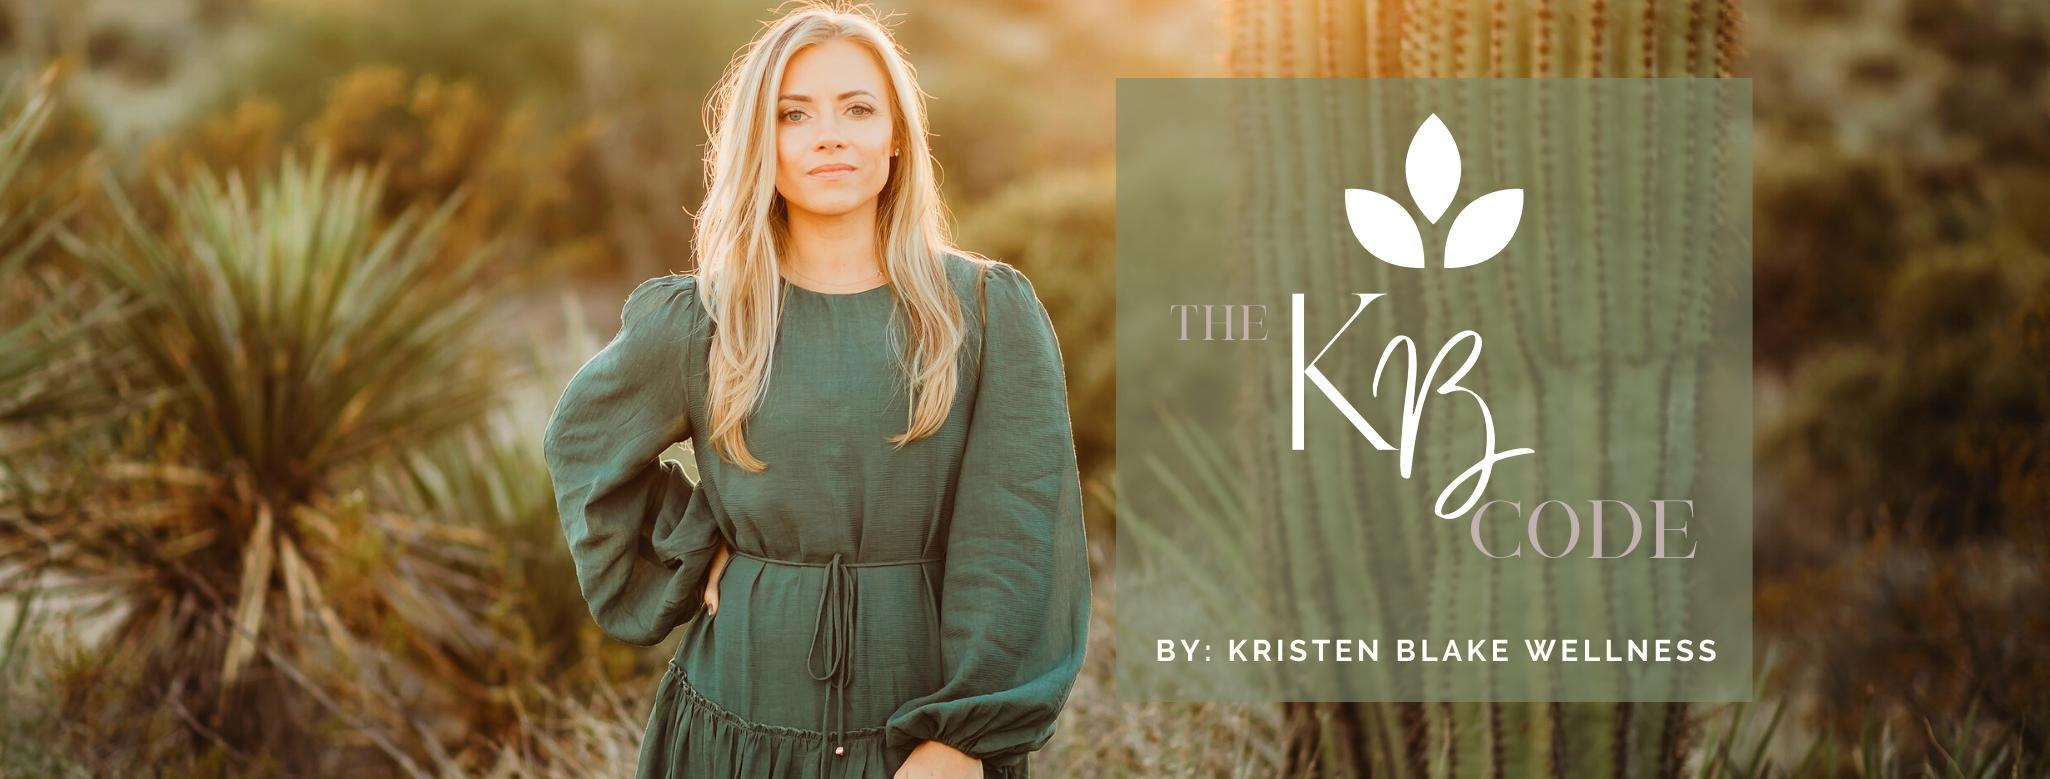 Enroll in the KB Code wellness program with Kristen Blake and turn your life around.